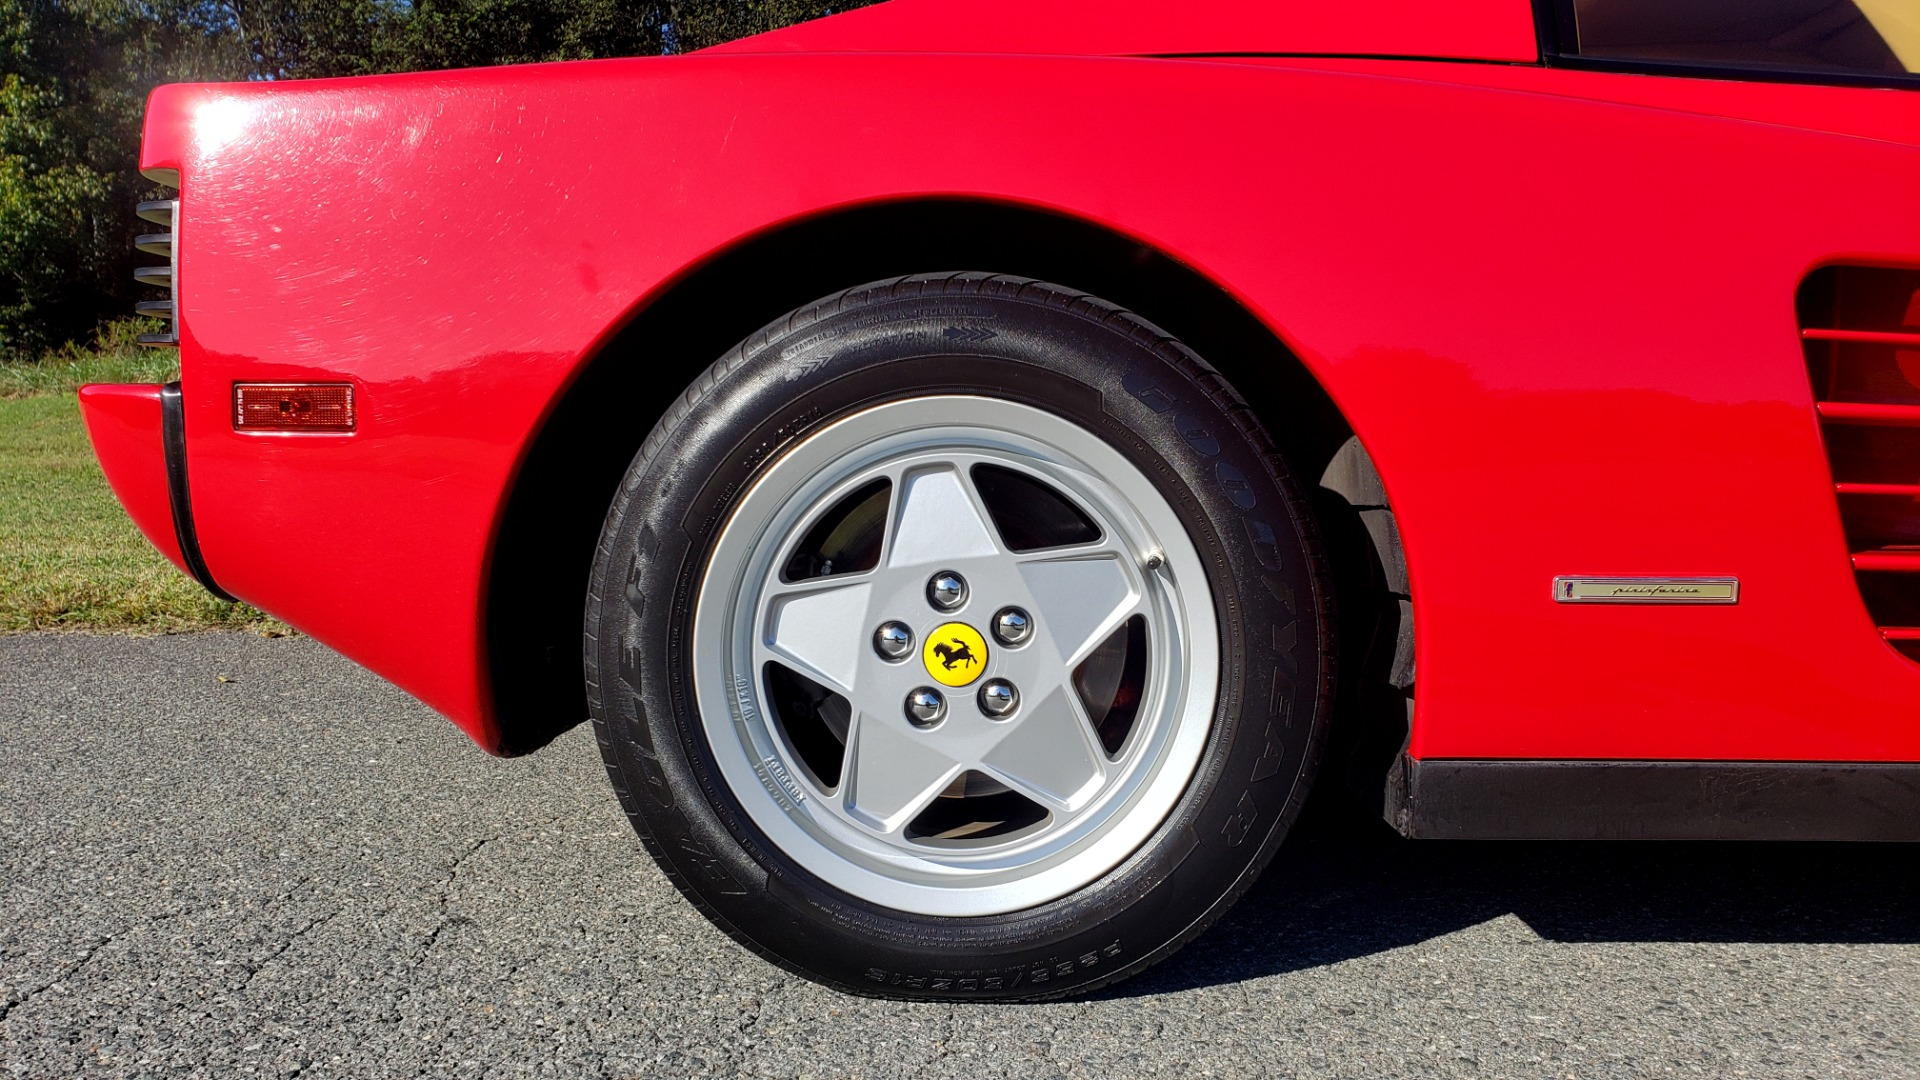 Used 1988 Ferrari TESTAROSSA COUPE / 4.9L FLAT-12 / 5-SPEED MANUAL / LOW MILES SUPER CLEAN for sale $128,999 at Formula Imports in Charlotte NC 28227 60